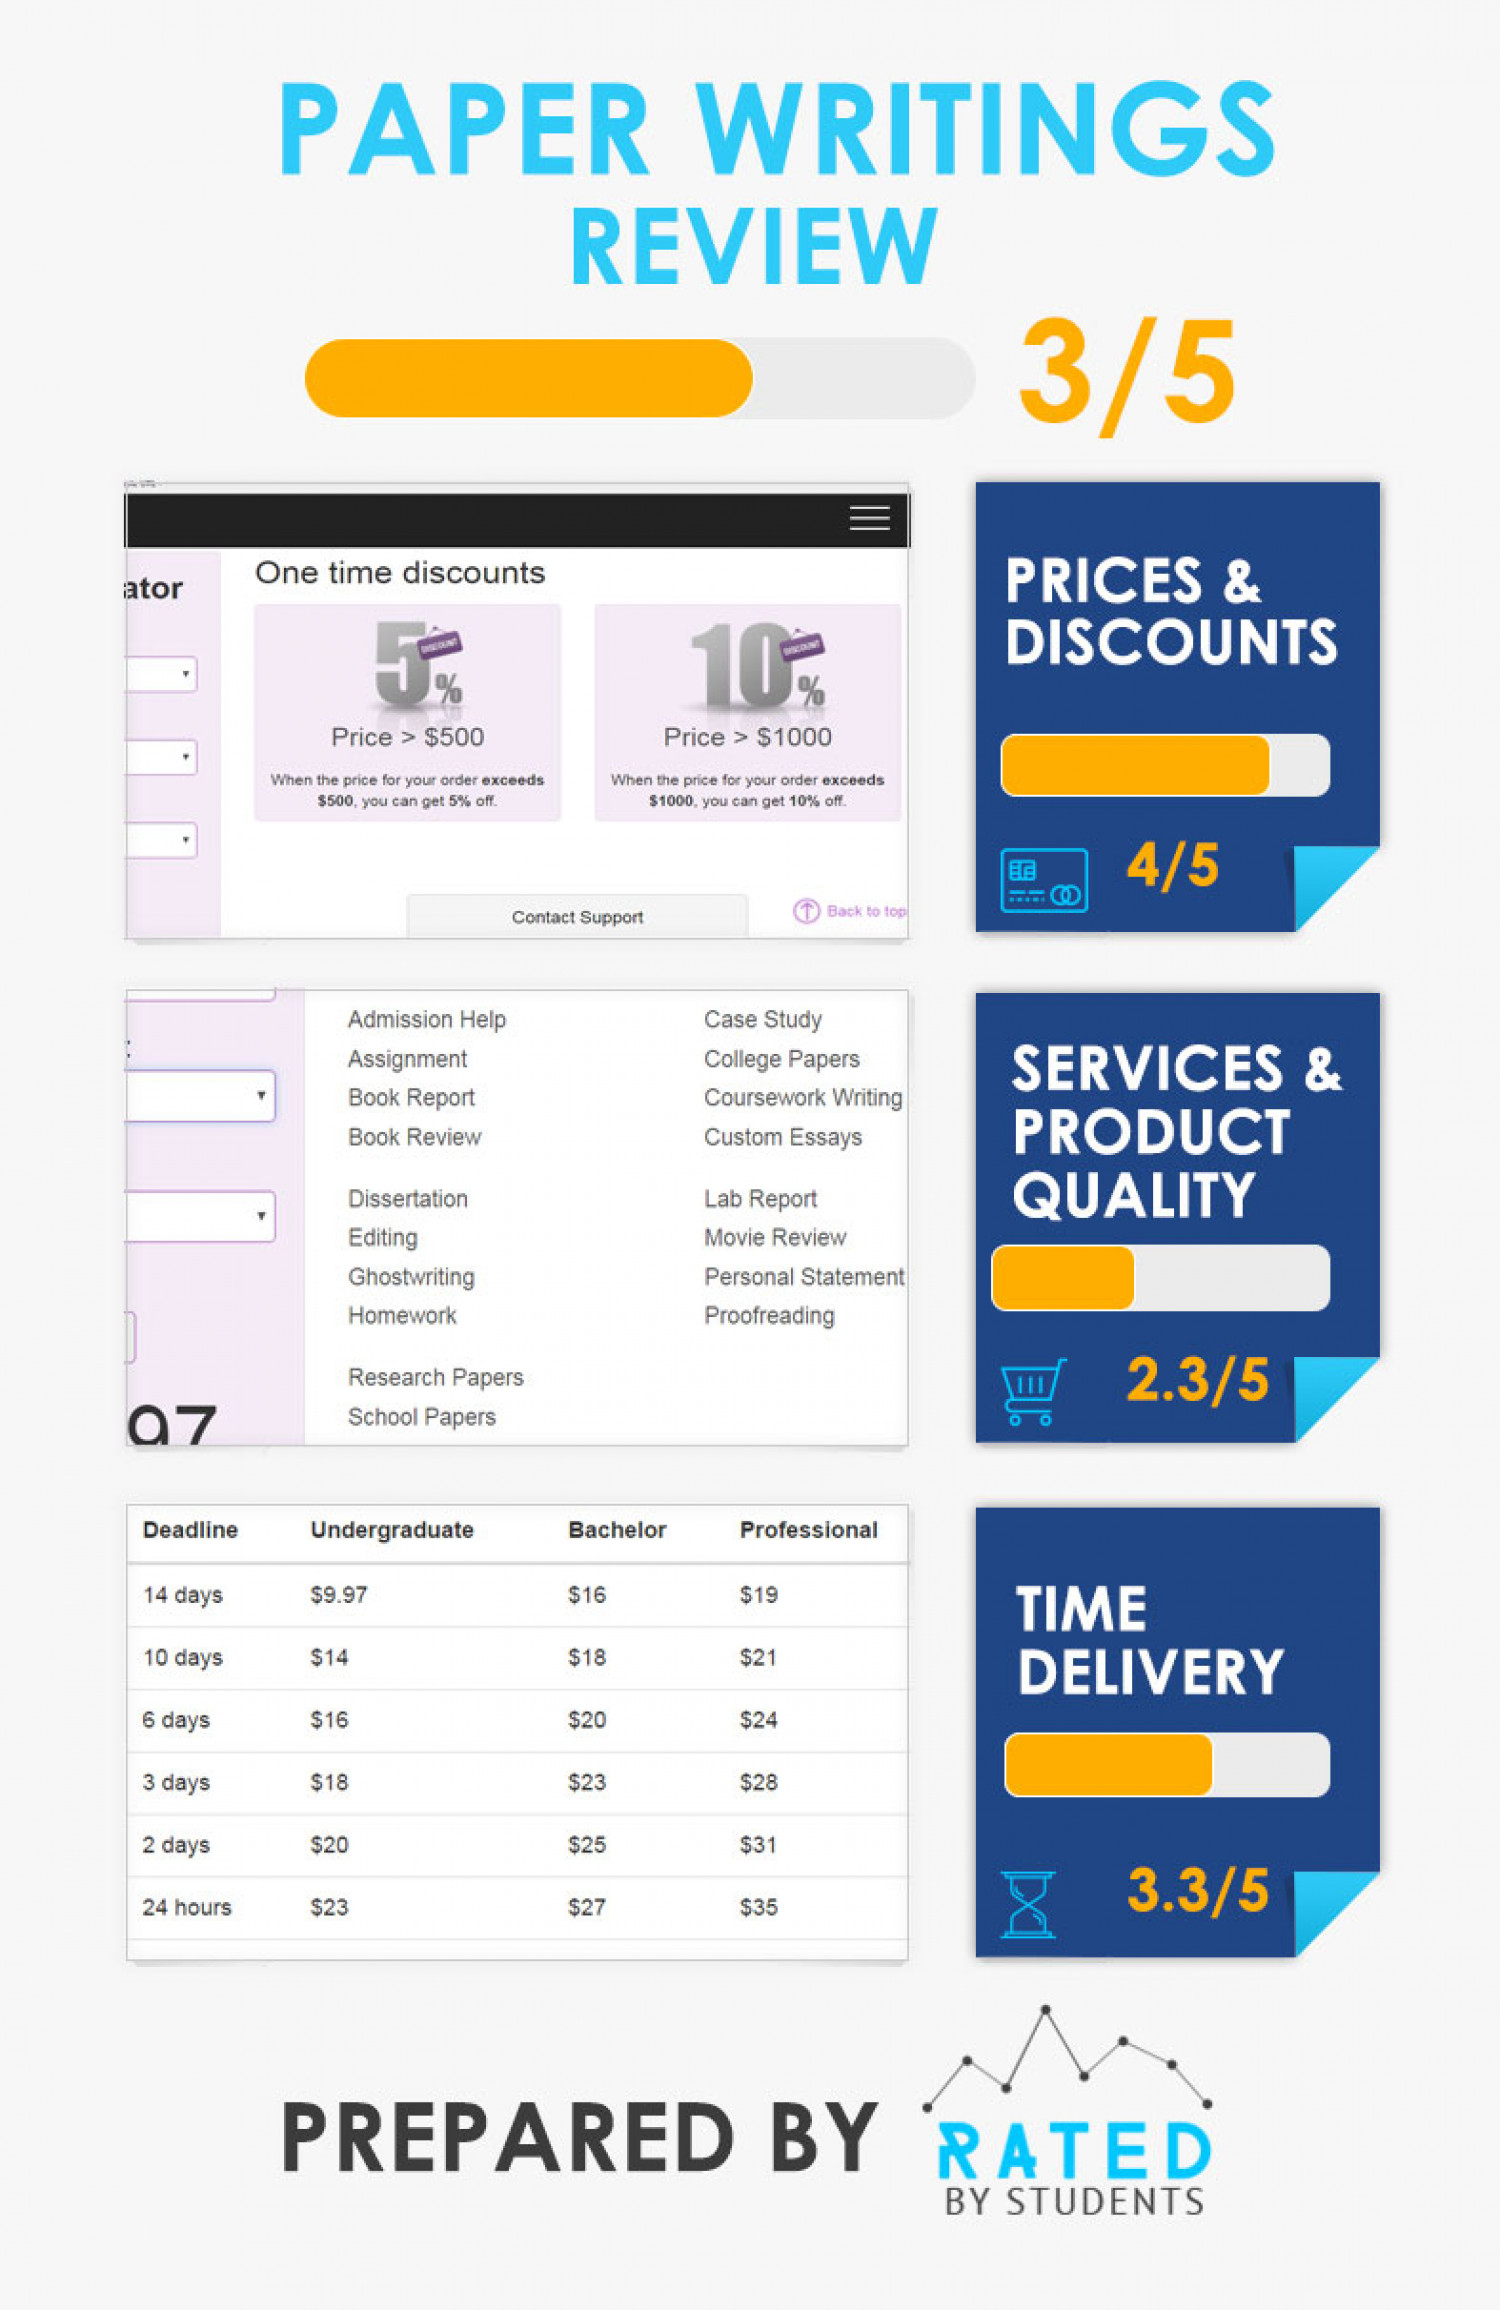 PaperWritings company - its prices, discounts and services Infographic